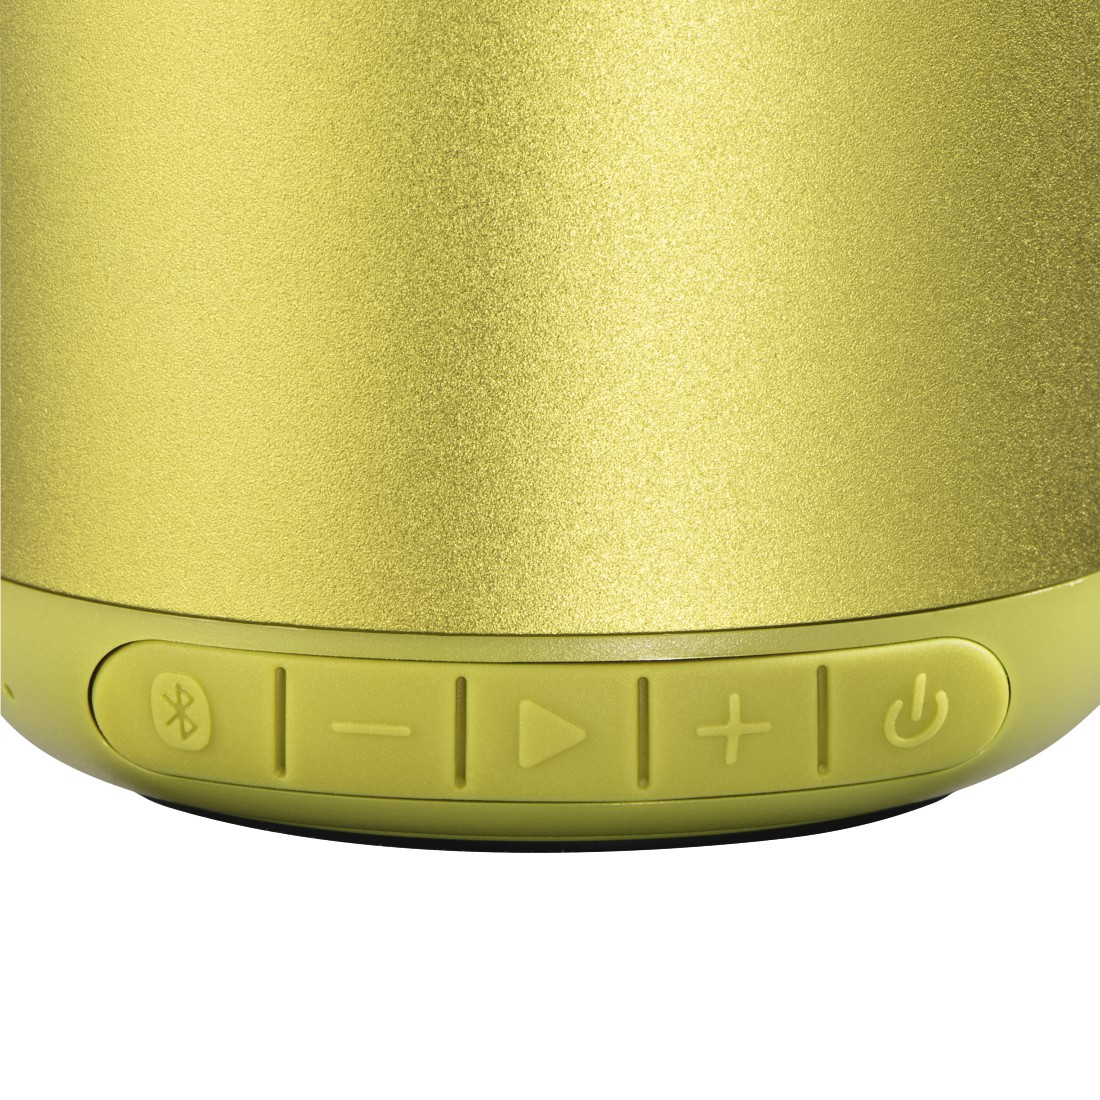 "dex2 High-Res Detail 2 - Hama, Enceinte Bluetooth® ""Drum 2.0"", 3,5 W, vert jaune"